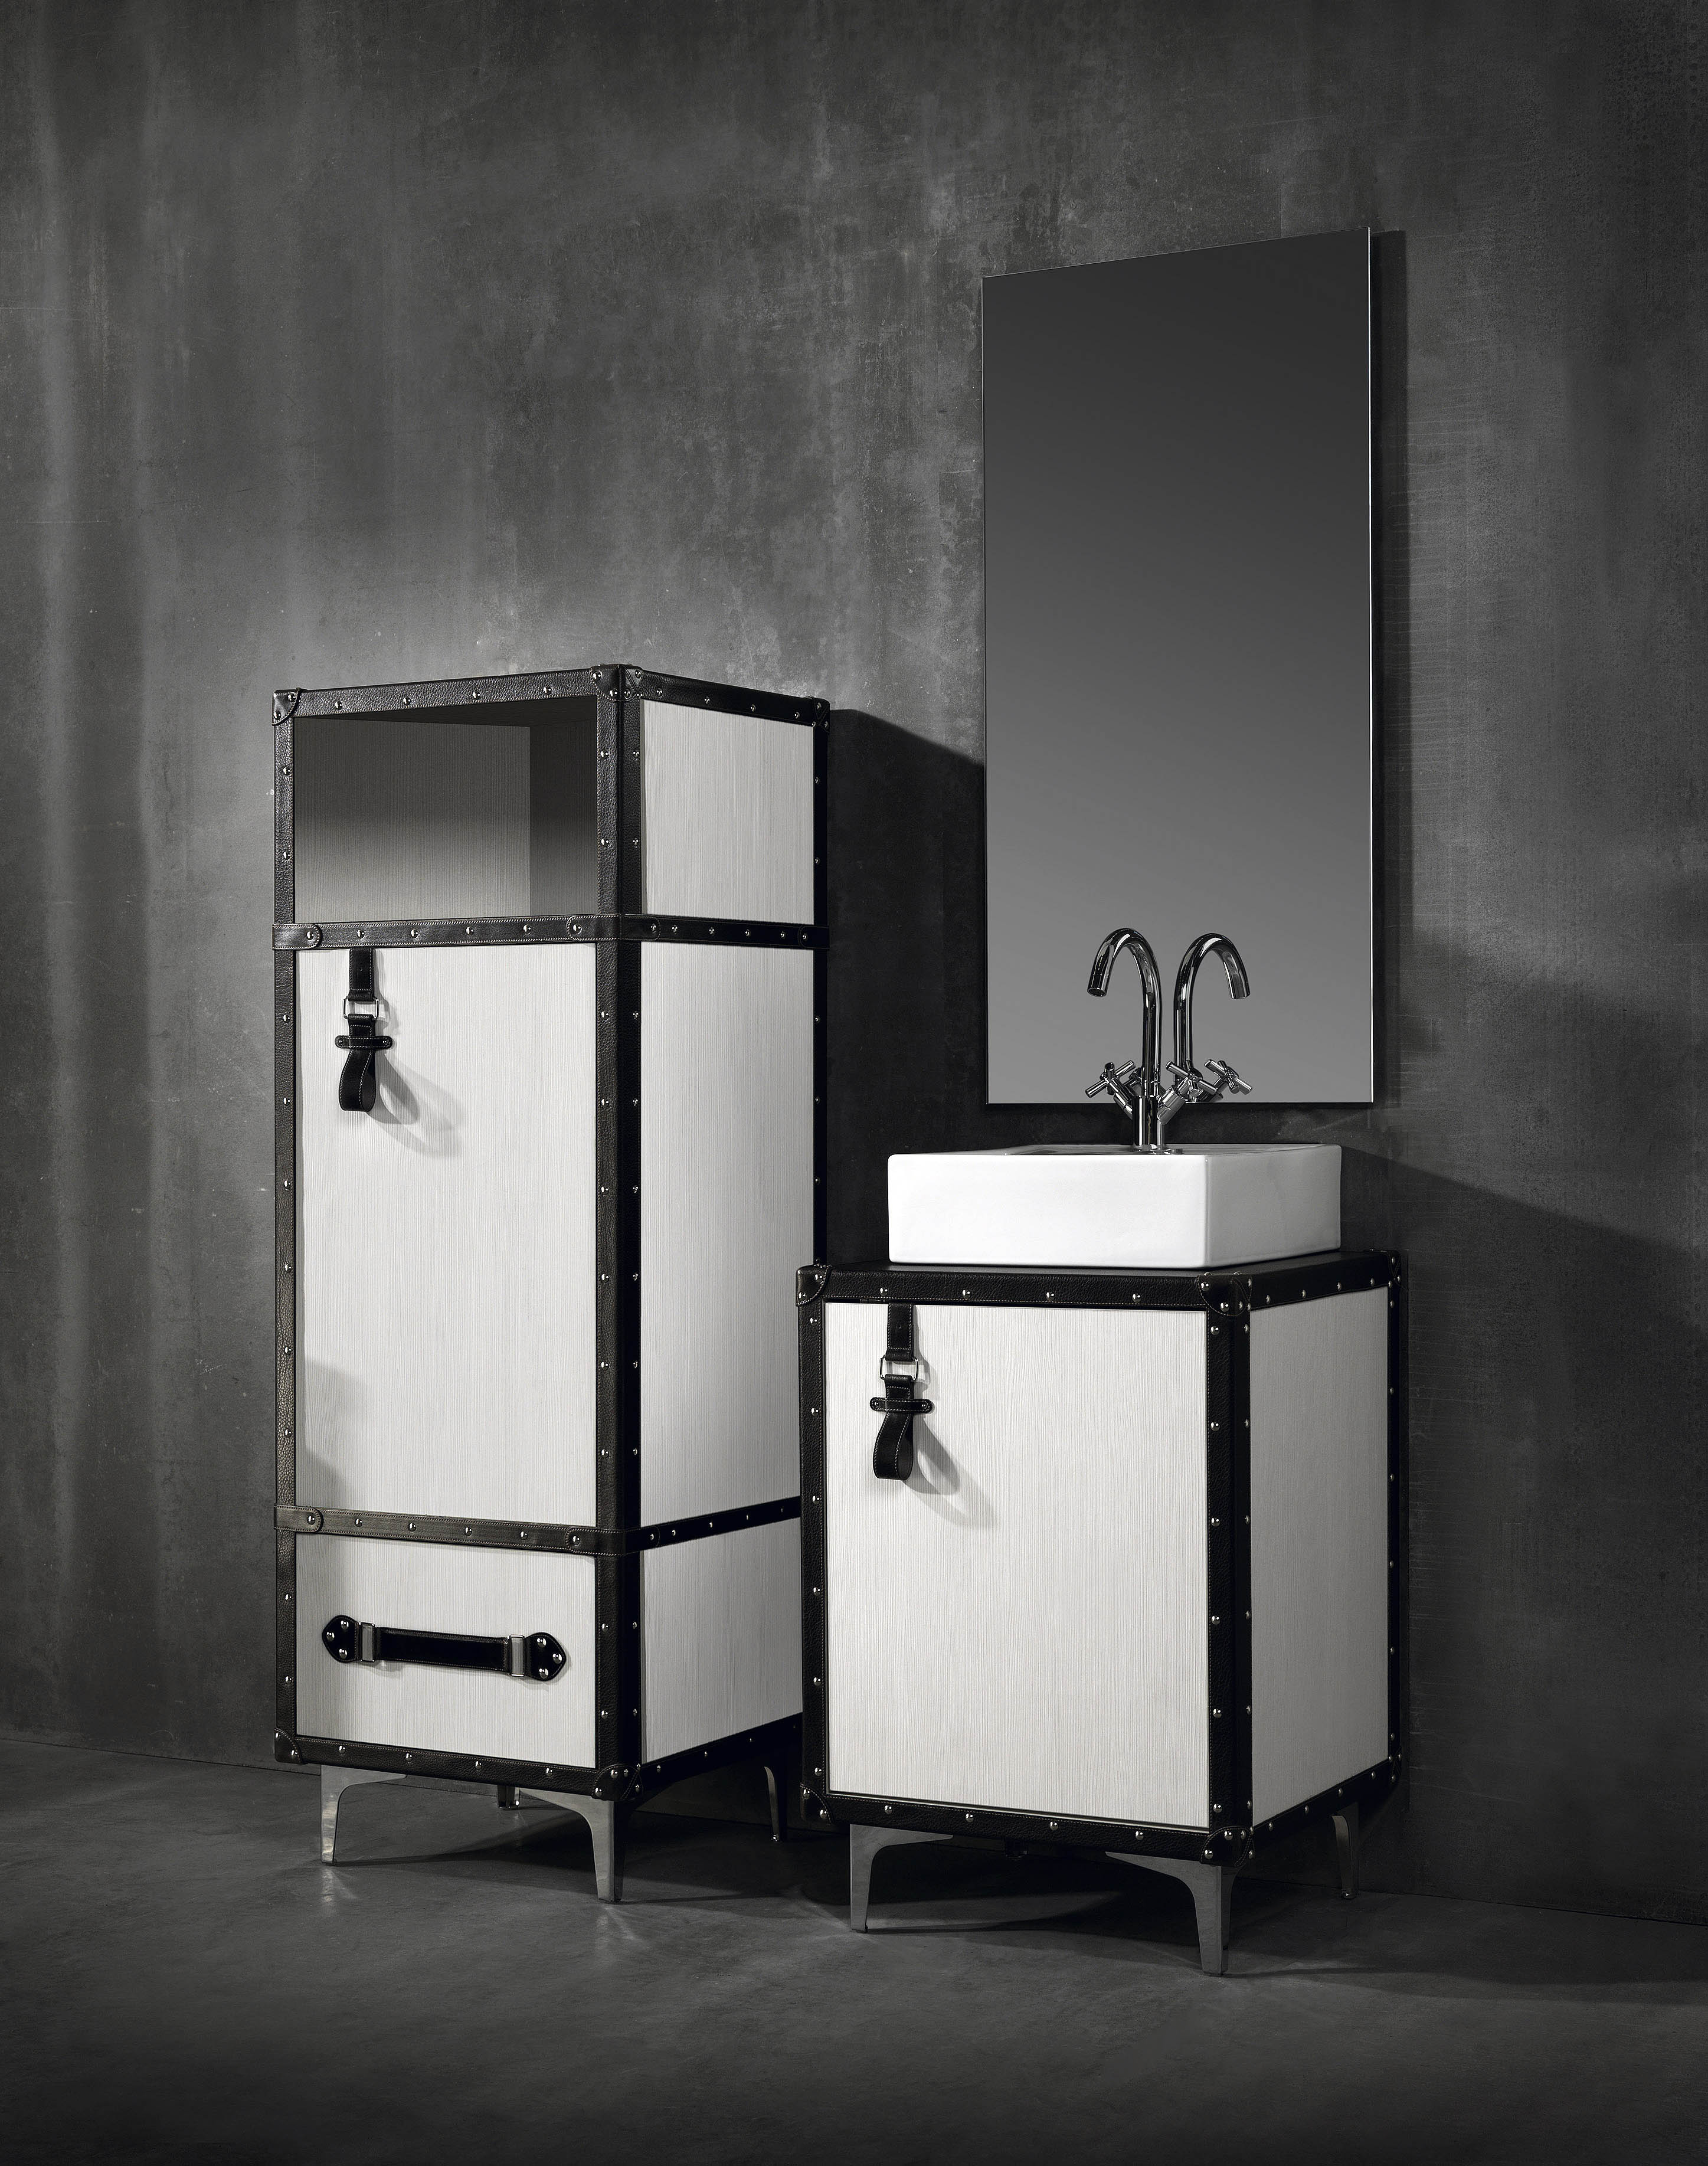 cloakroom suites, vanity units, designer bathroom suites, complete bathroom suites